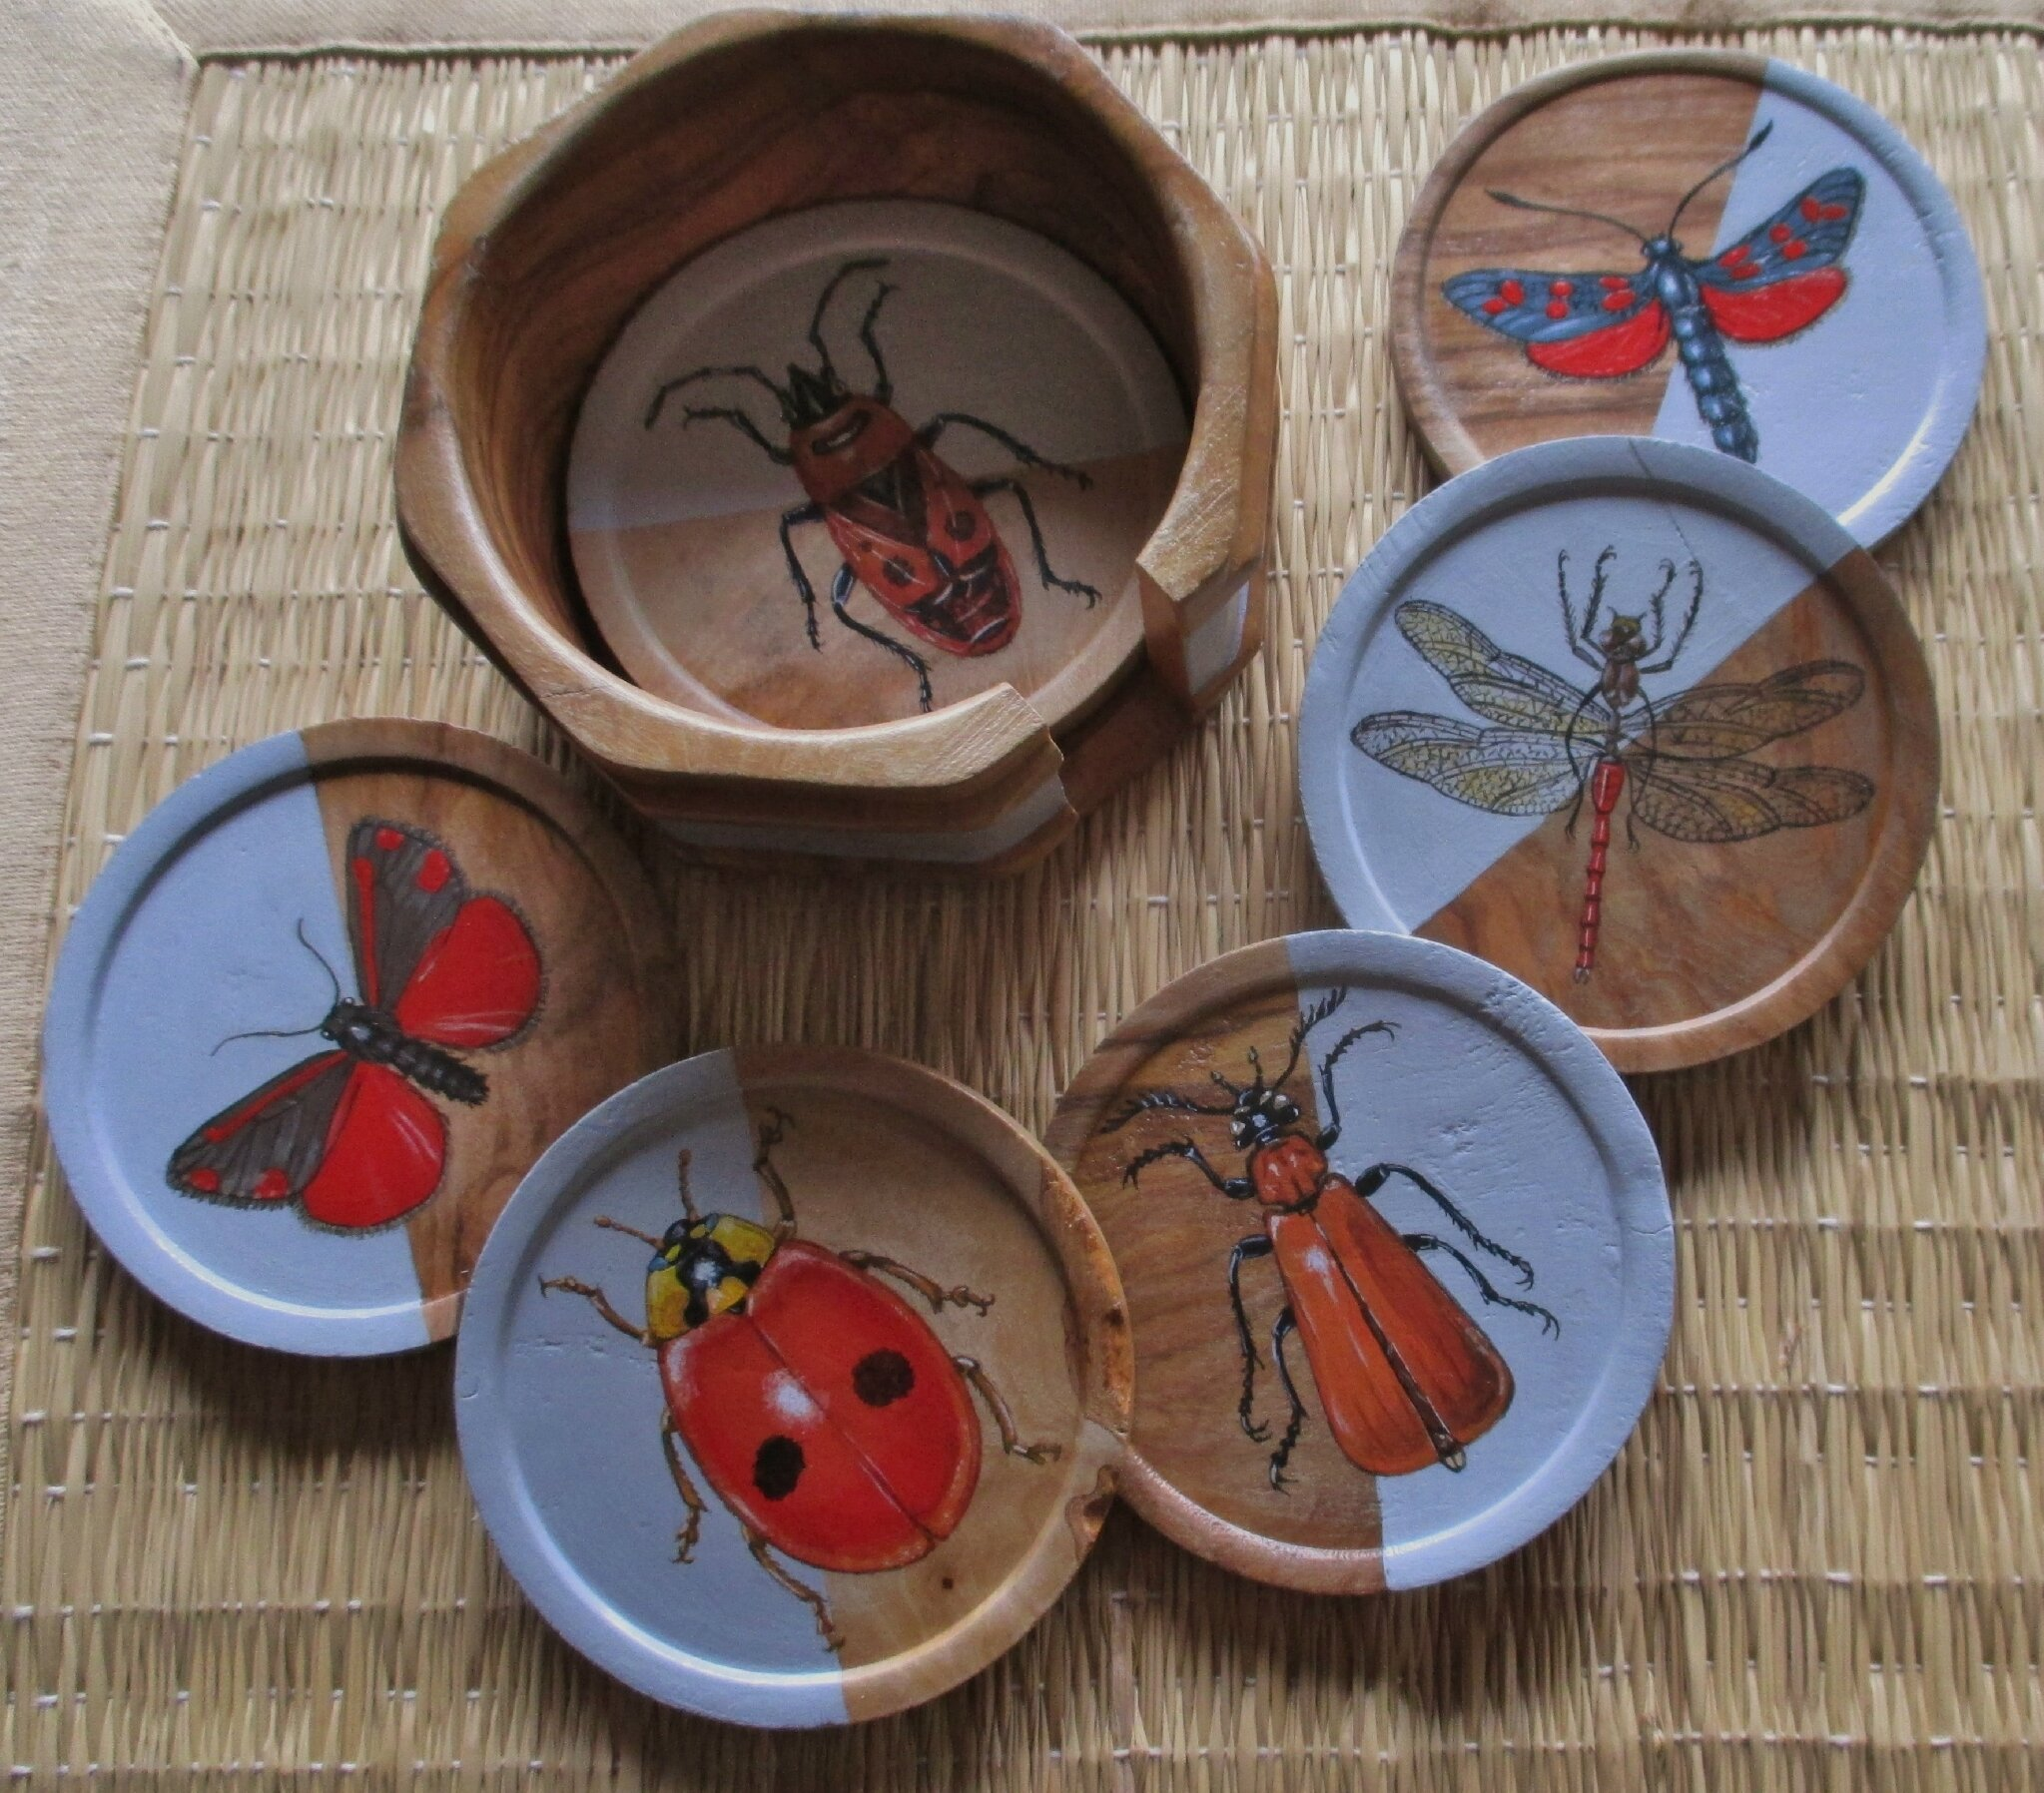 Insectes rouges